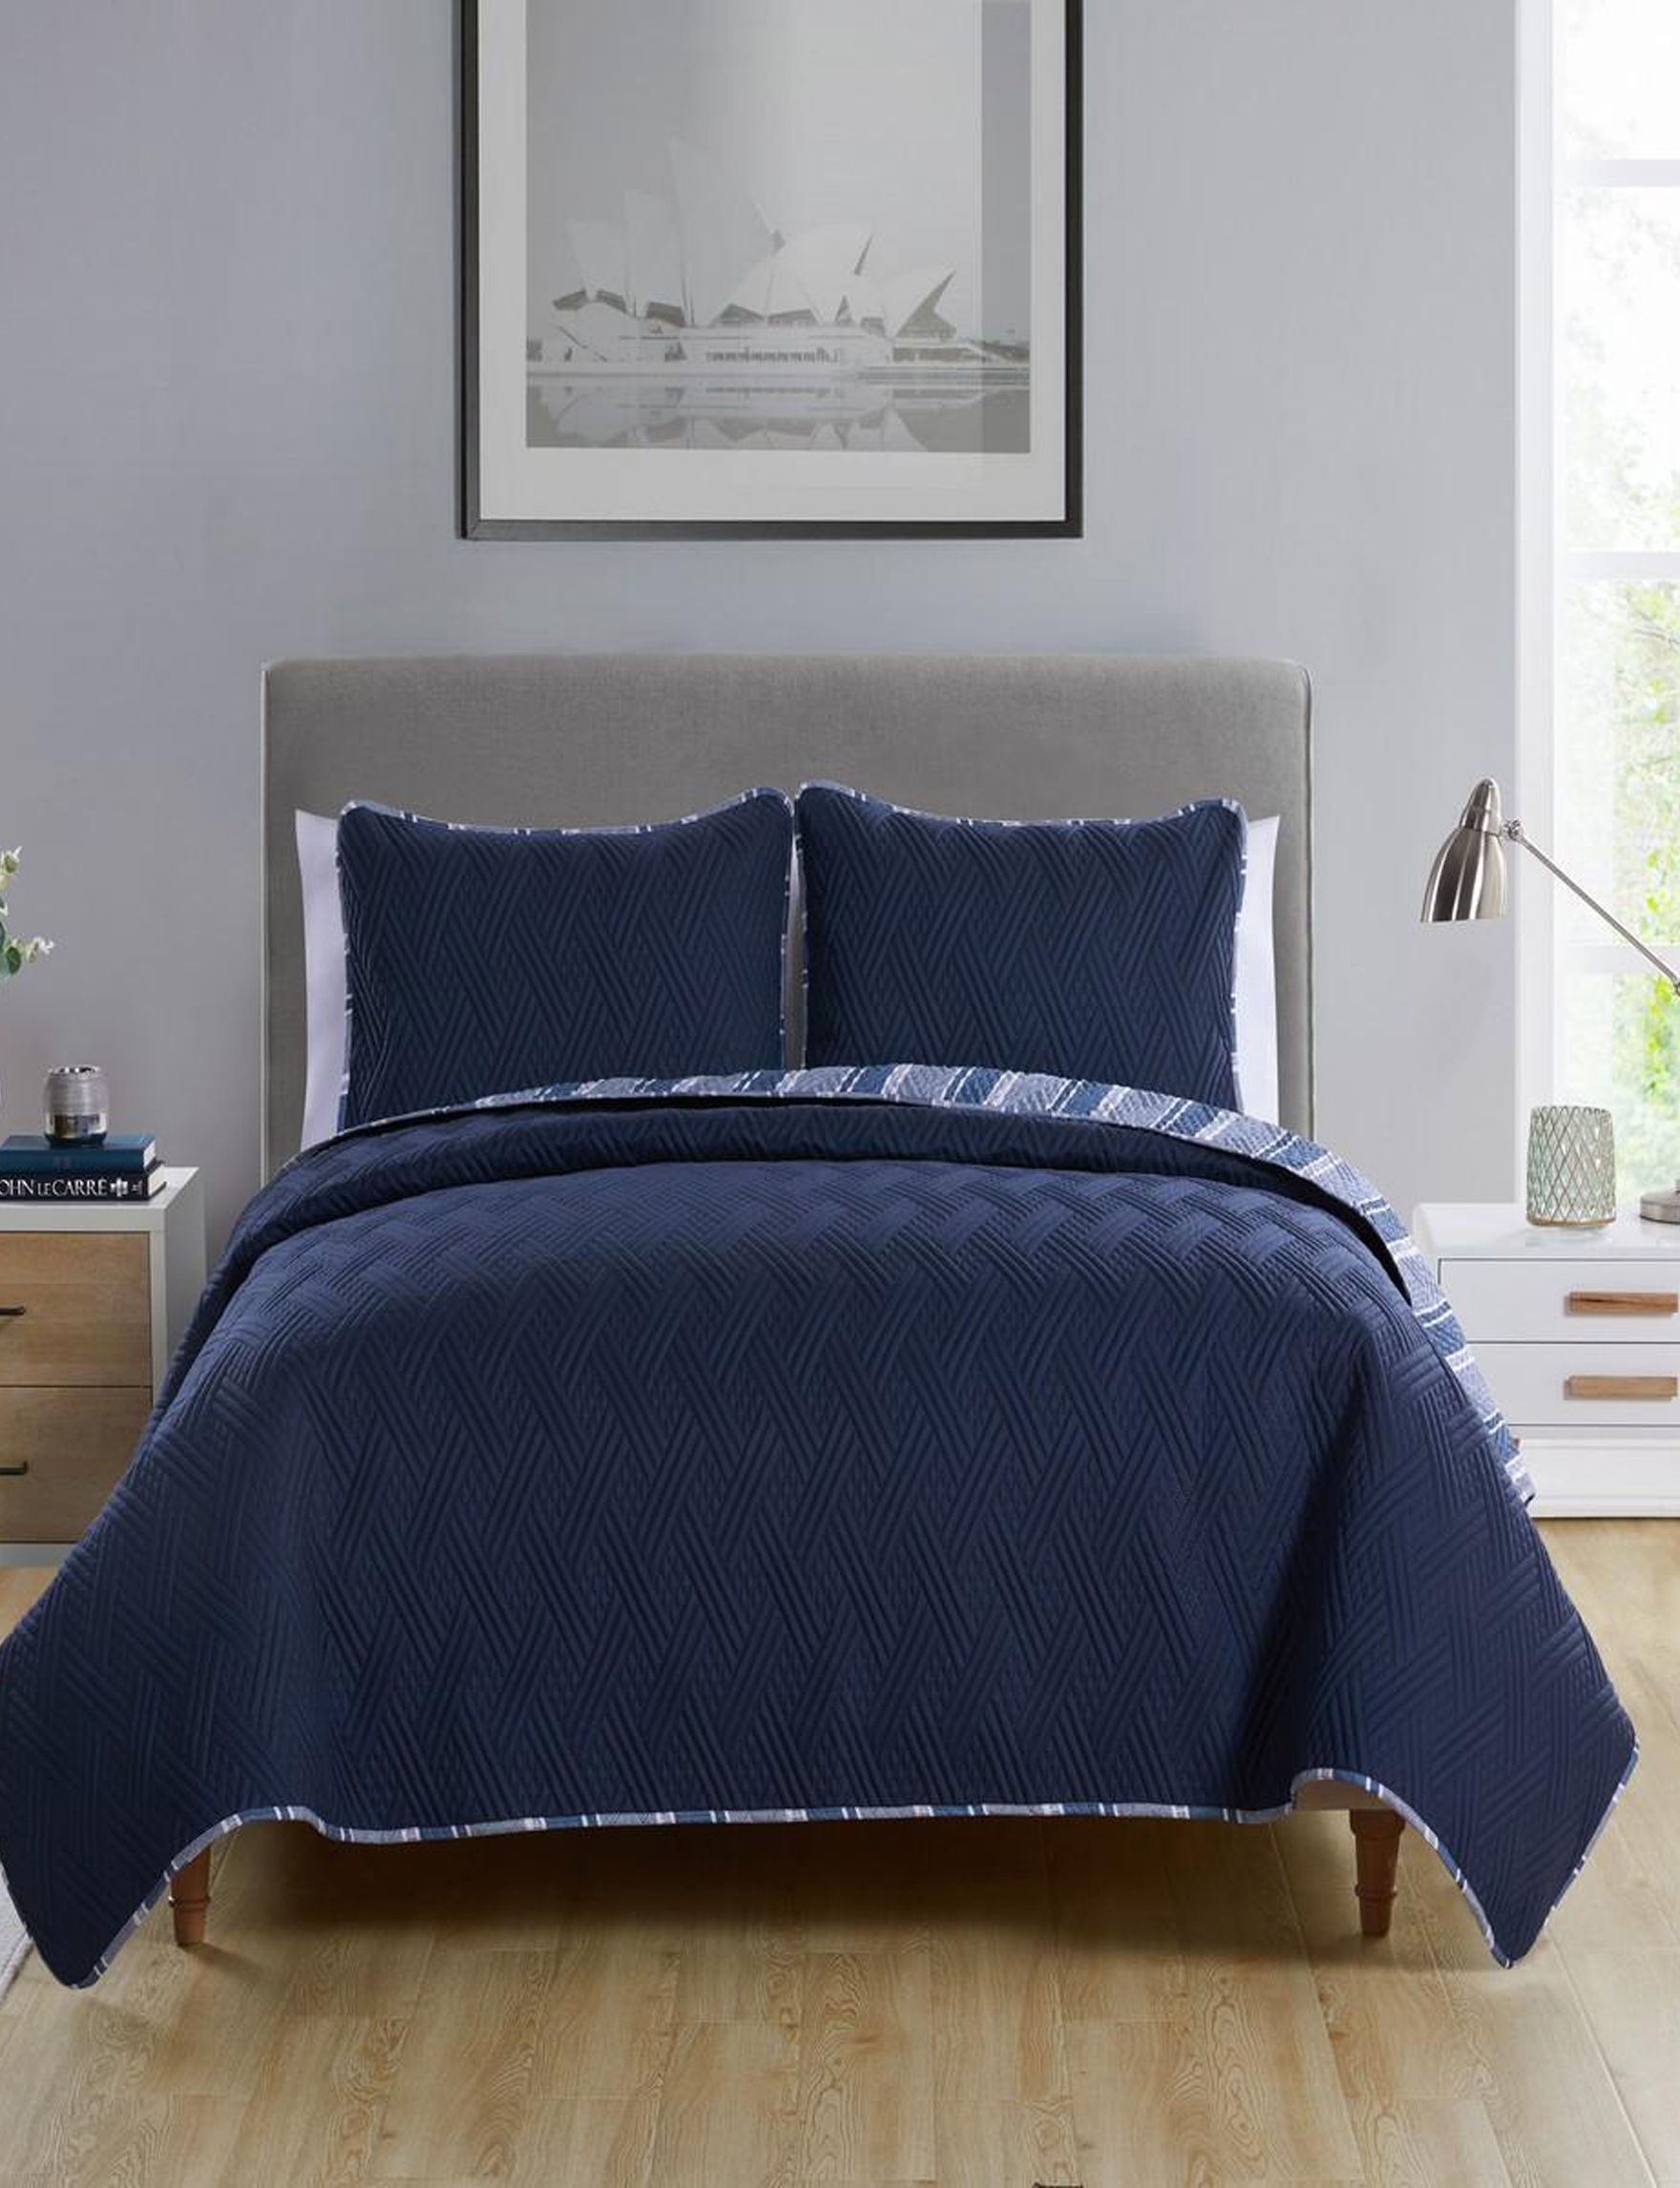 VCNY Home Navy Quilts & Quilt Sets